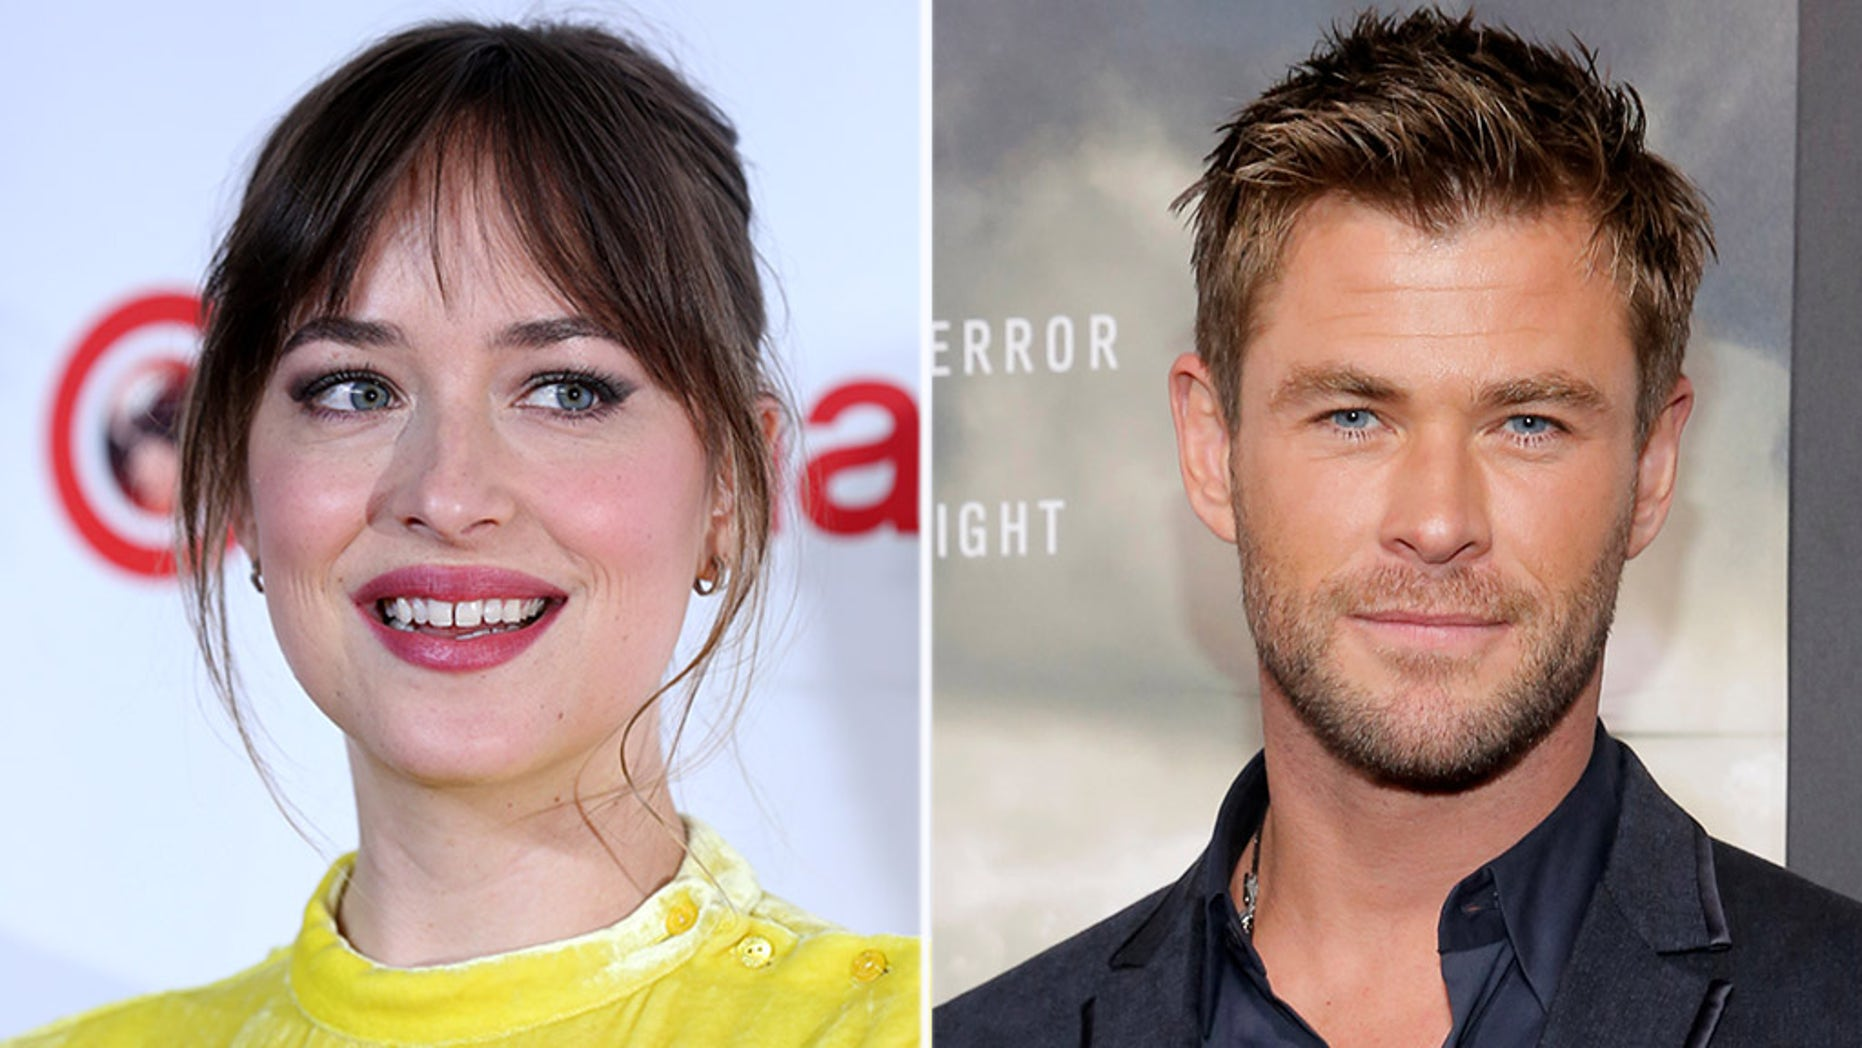 Dakota Johnson isn't mincing words when it comes to Chris Hemsworth's body.